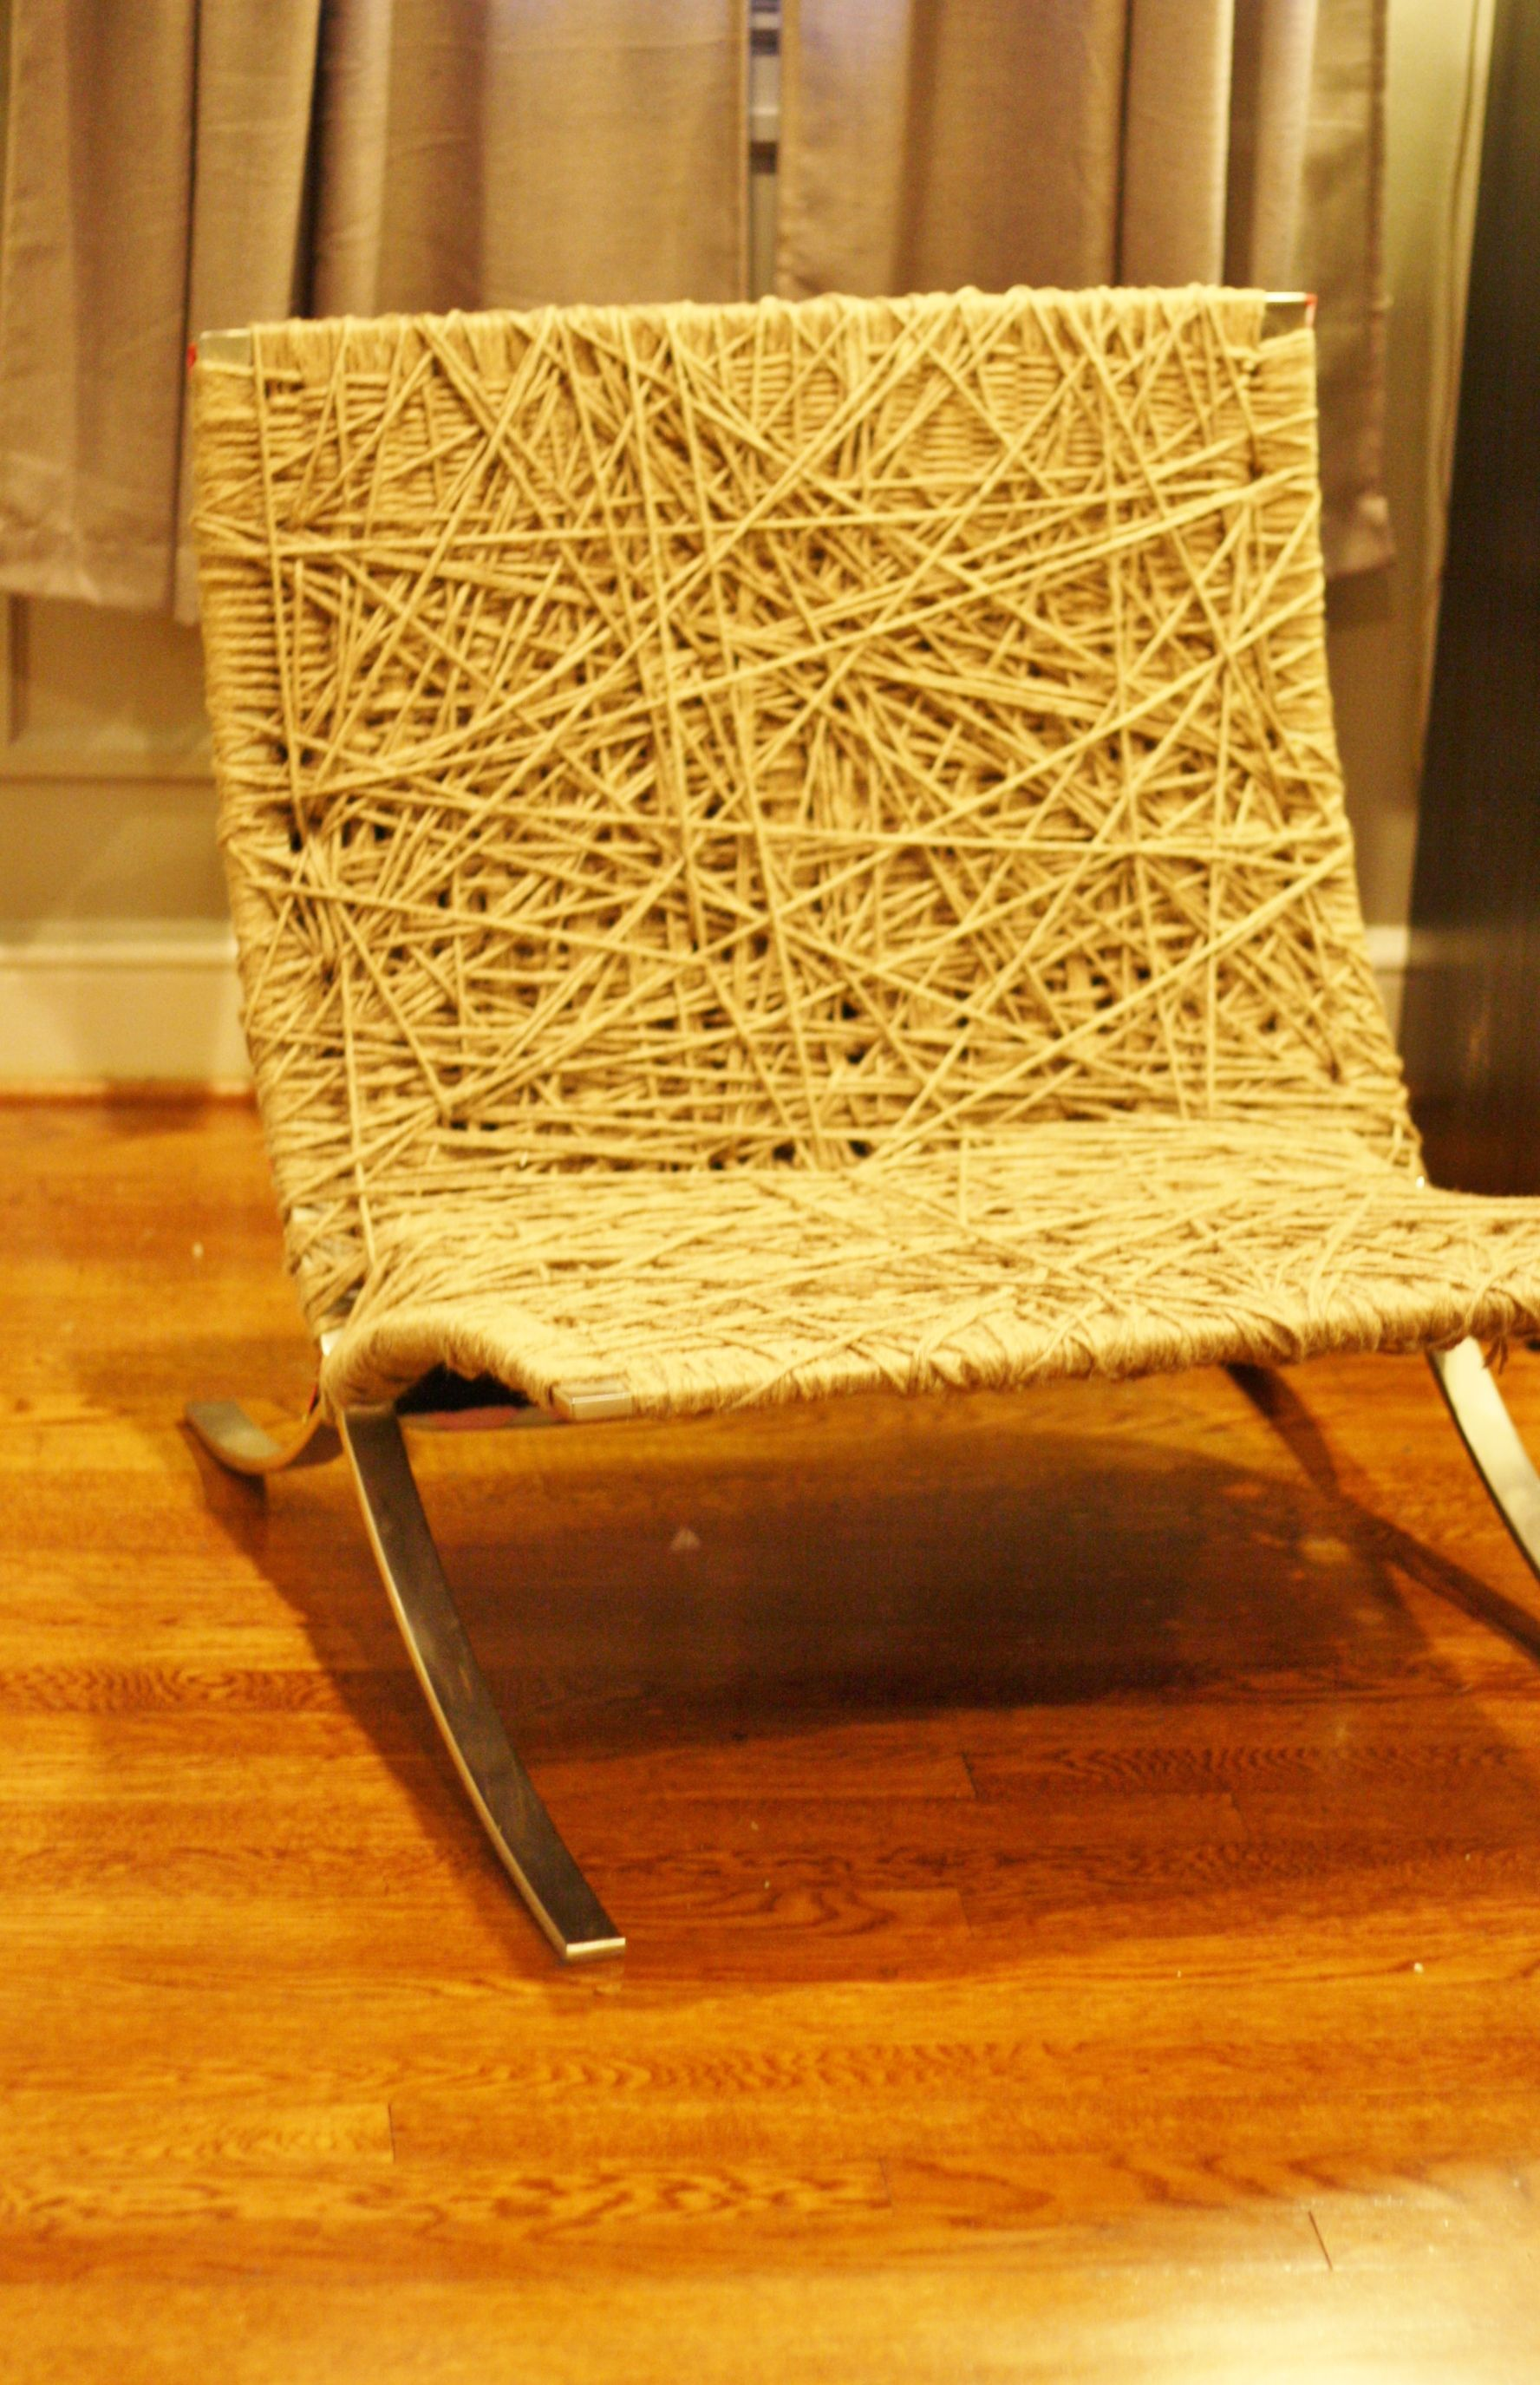 Price reduced sturdy wooden vintage rocking chair made in yugoslavia - Barcelona Chair Hand Strung With Jute Cord Rope Woven In A Random Pattern To Create Seat And Back Rest Frame Is Made Up Of Stainless Steel